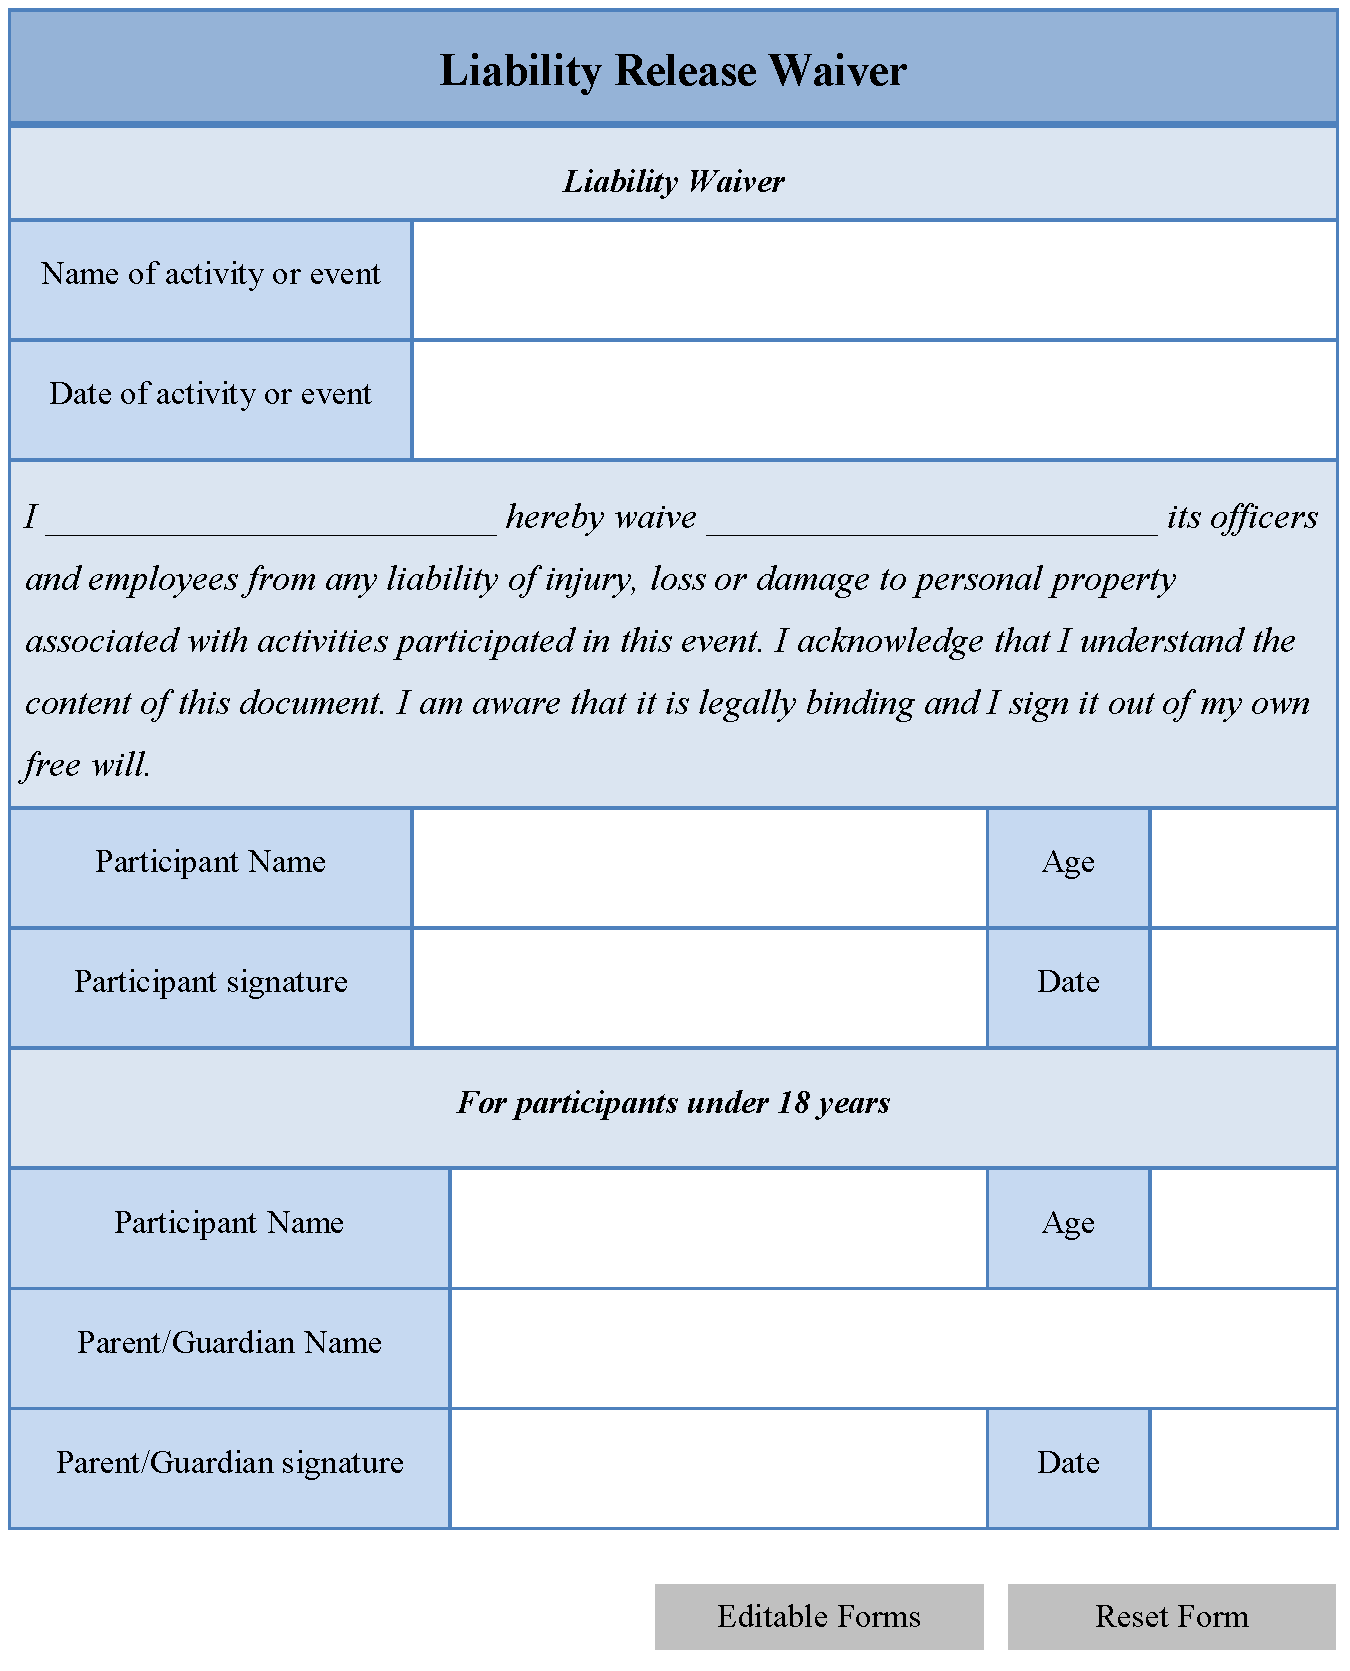 Liability Waiver Form  Free Liability Waiver